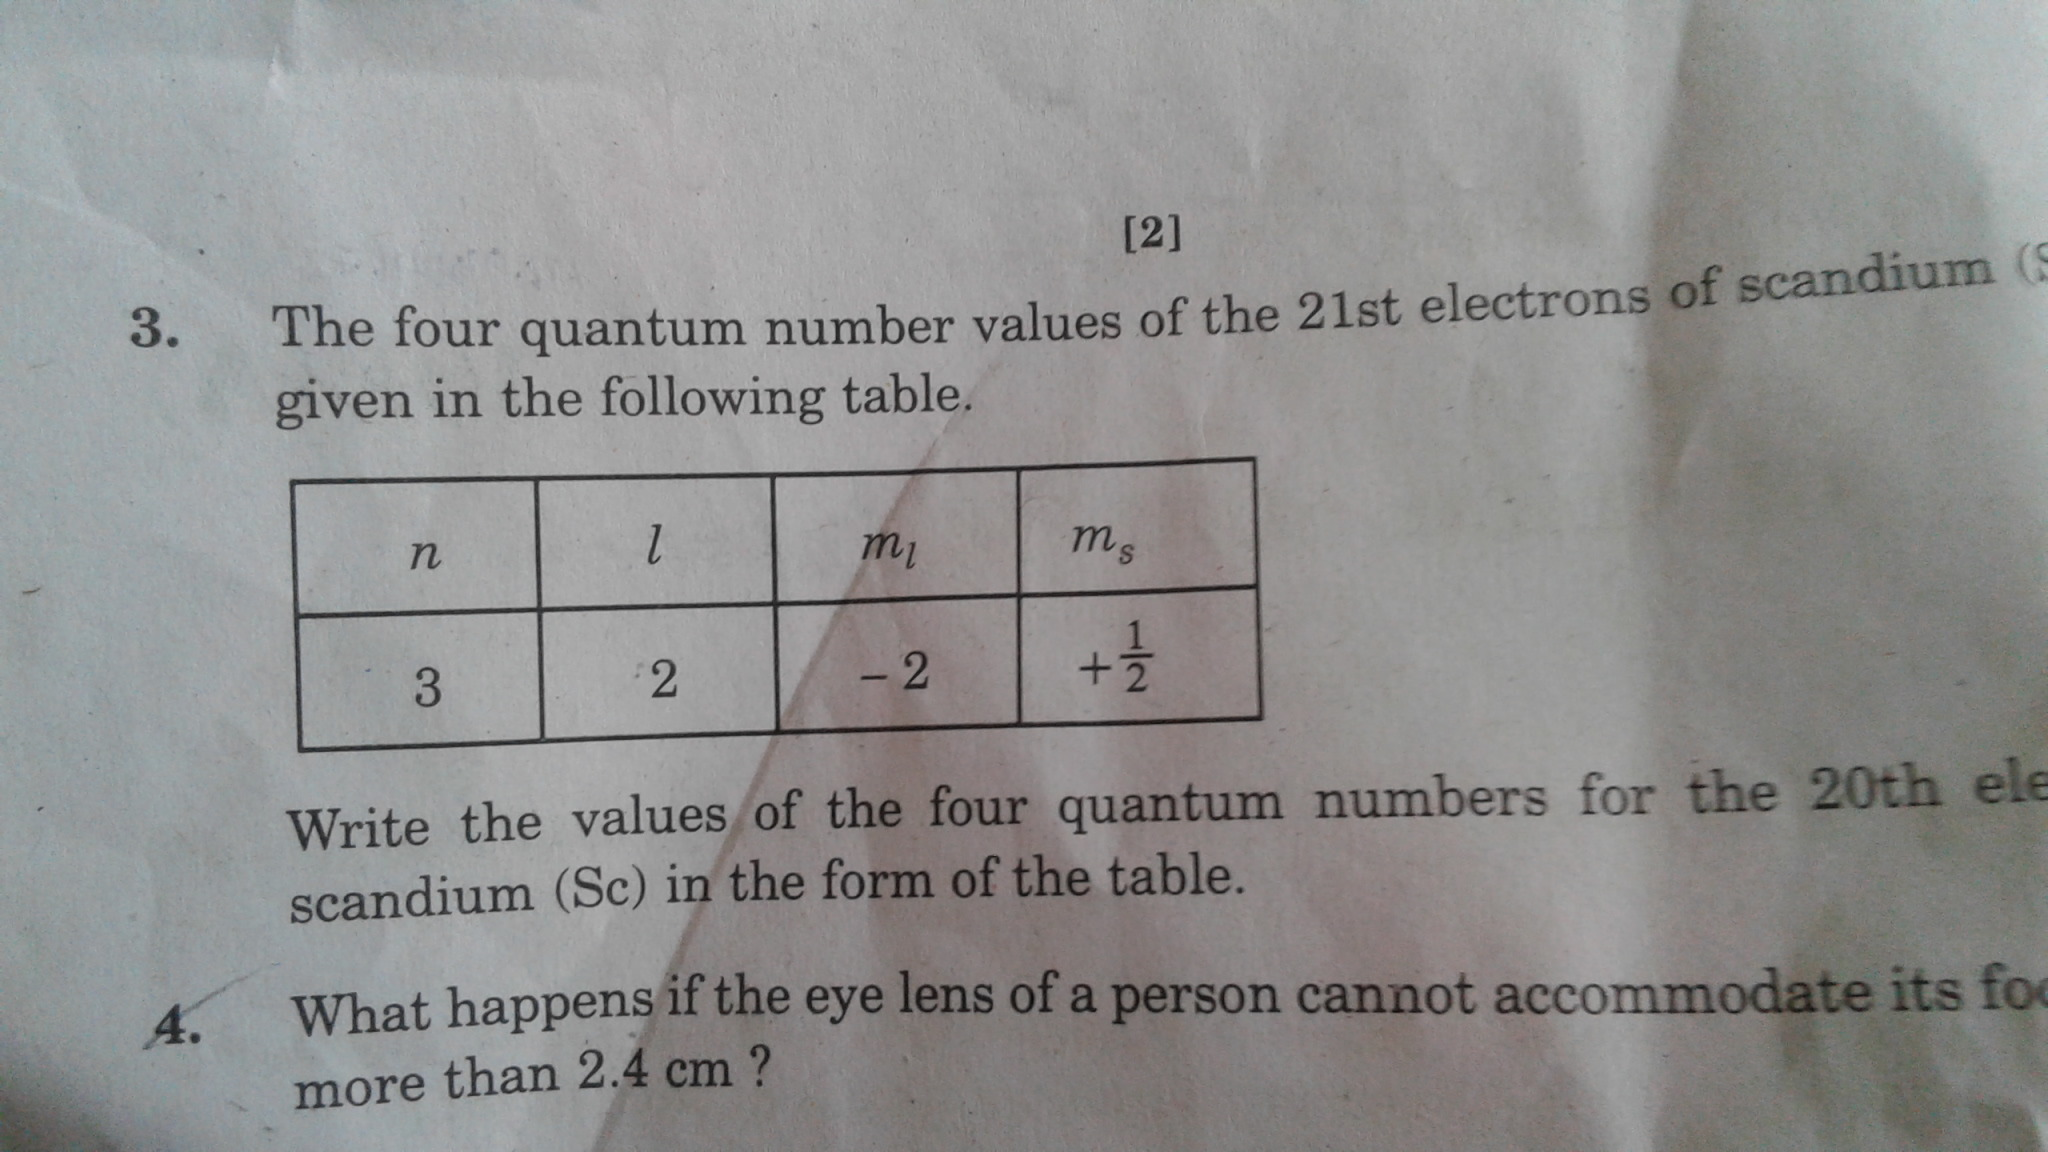 Write The Values Of The Four Quantum Numbers For 20th Electron For Scandium